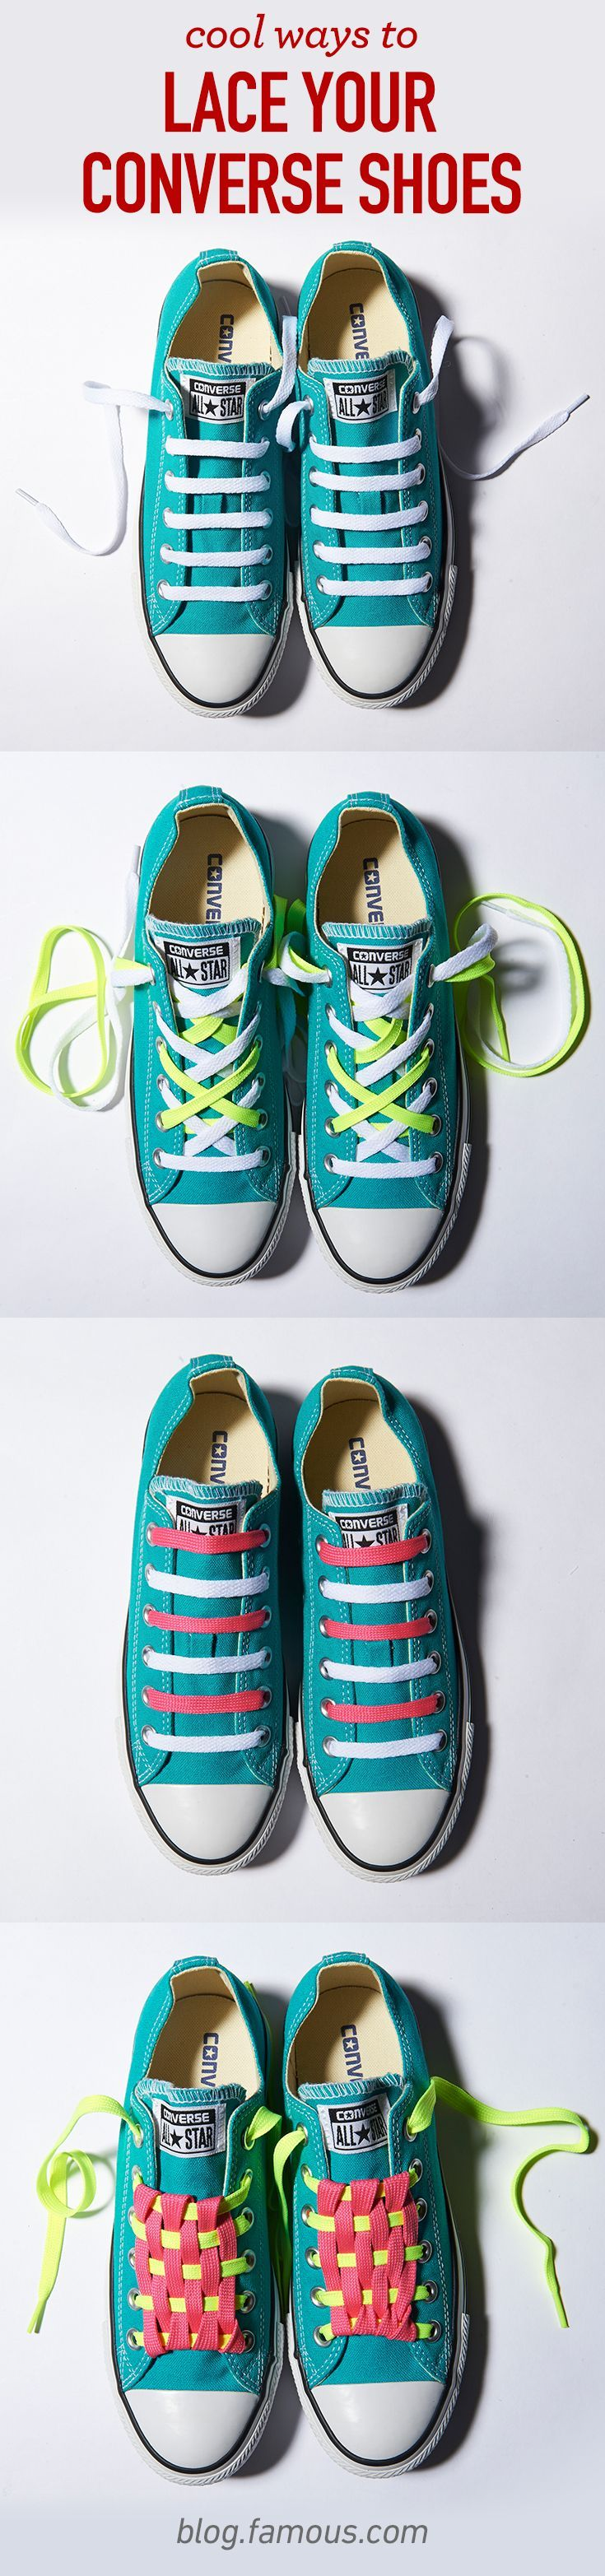 DIY laces are a great way to customize your Converse shoes! Gotta try